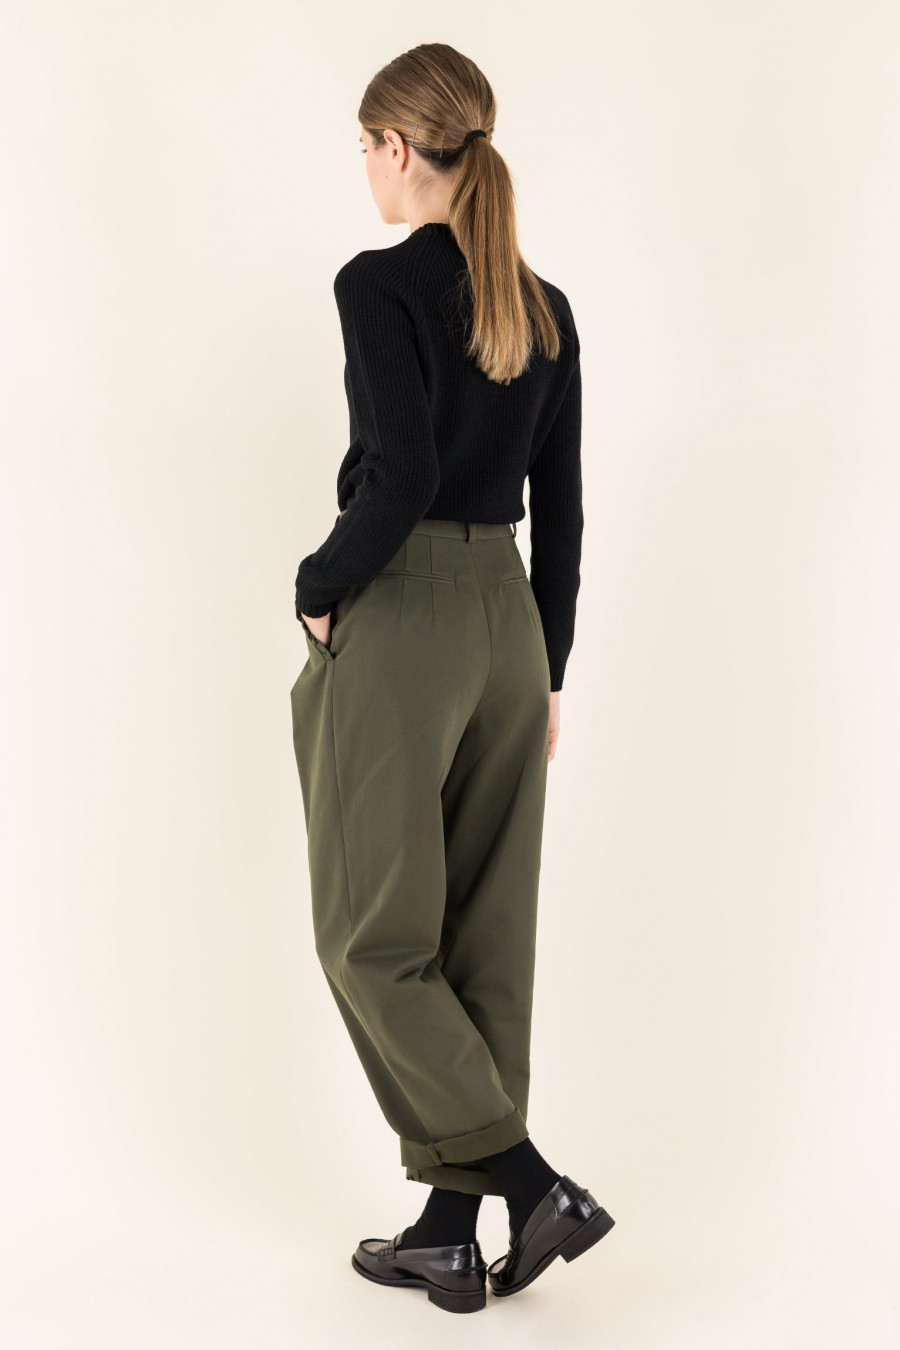 trousers with little ruffle on the pockets